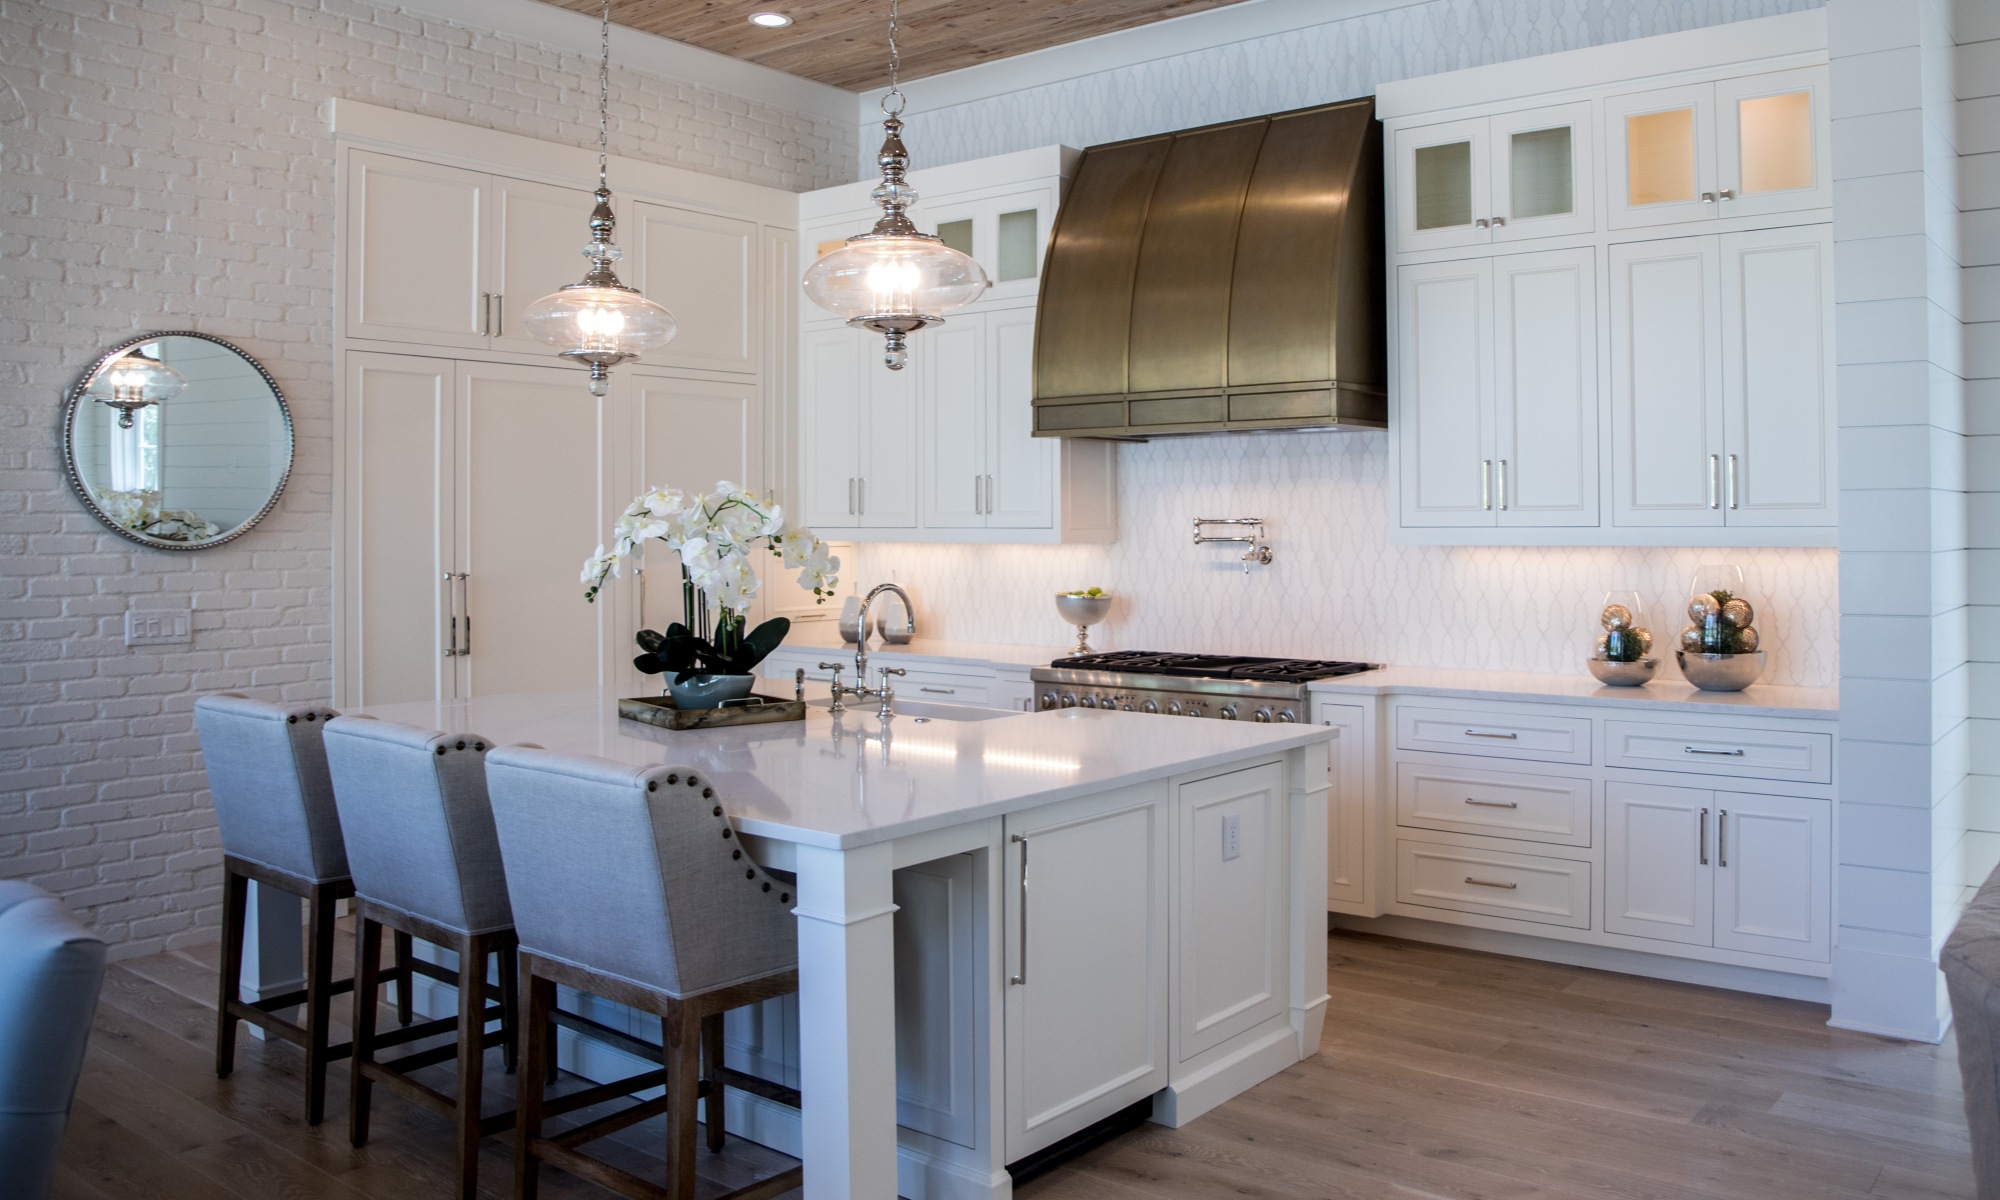 Kitchen interior design in 30A House